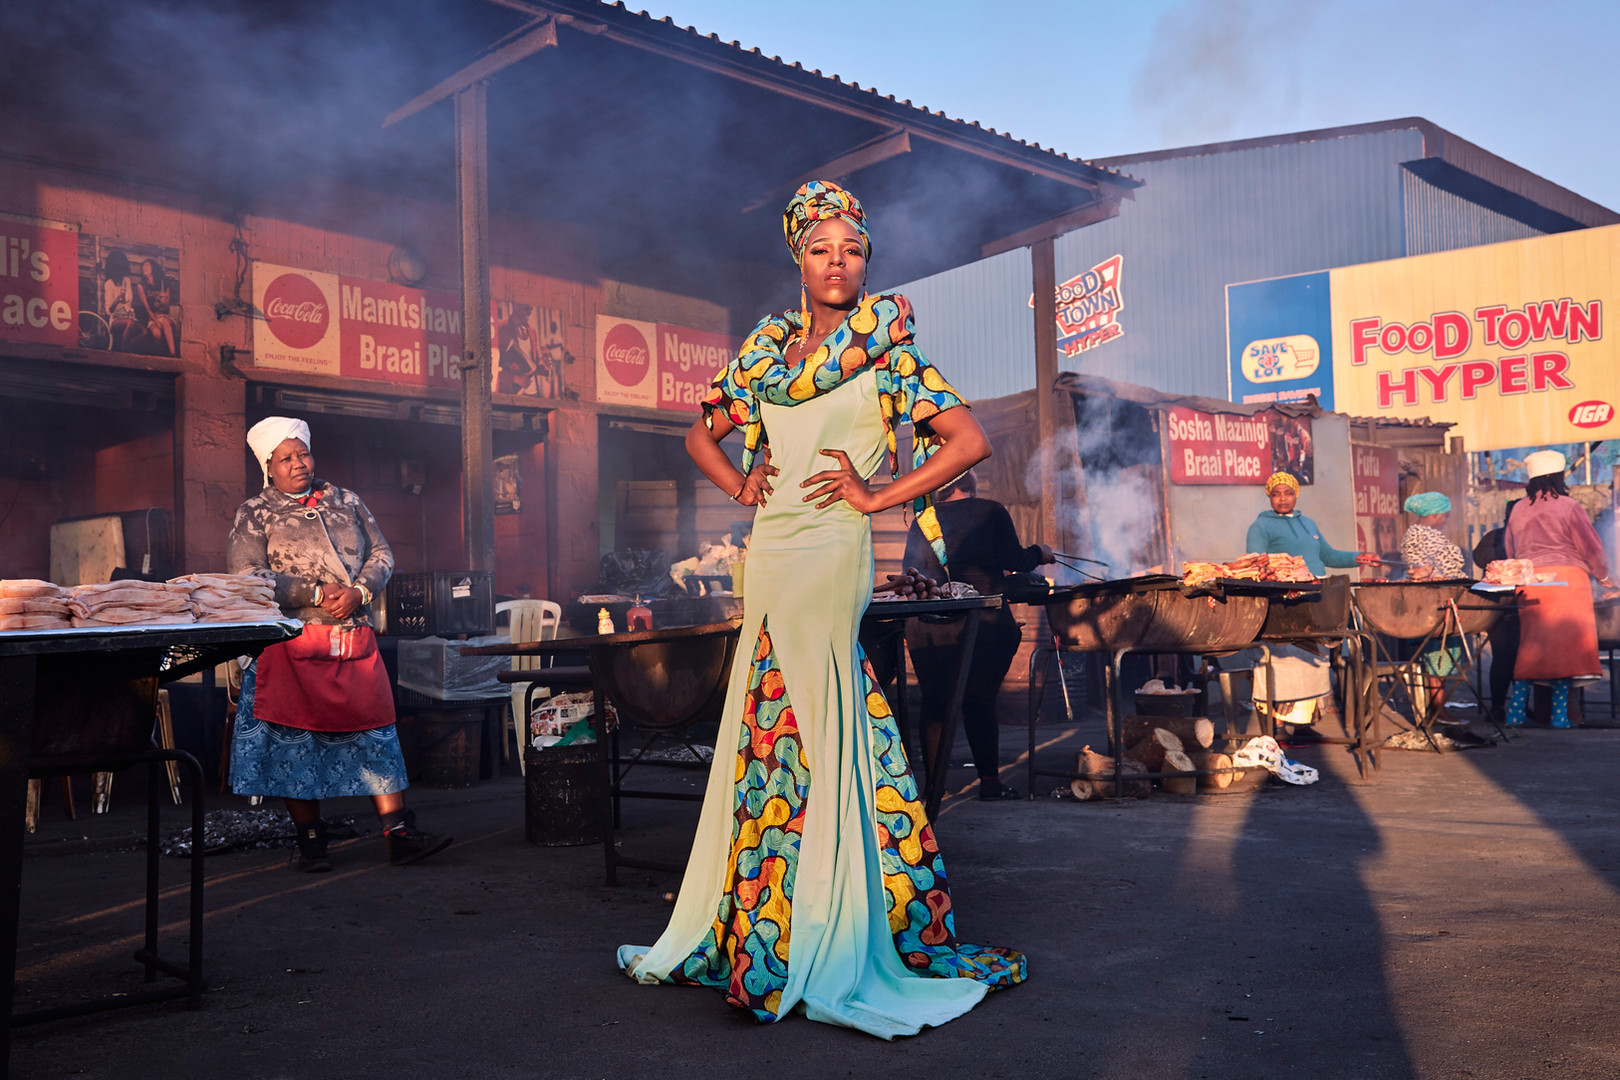 "Belinda Qaqamba Kafassie, a drag artist and activist from Elands Bay, poses at the shisanyama in Khayelitsha, a community space where women cook and sell meat. Kafassie started drag as an escape from the oppression they felt at Stellenbosch University for being ""black, Xhosa, poor, queer and effeminate."" Instead of conforming to the westernised standards of drag, Kafassie uses their unique style to elevate and celebrate African drag as an art that tells stories about Africans in Africa, the African way. Aug. 4, 2019."